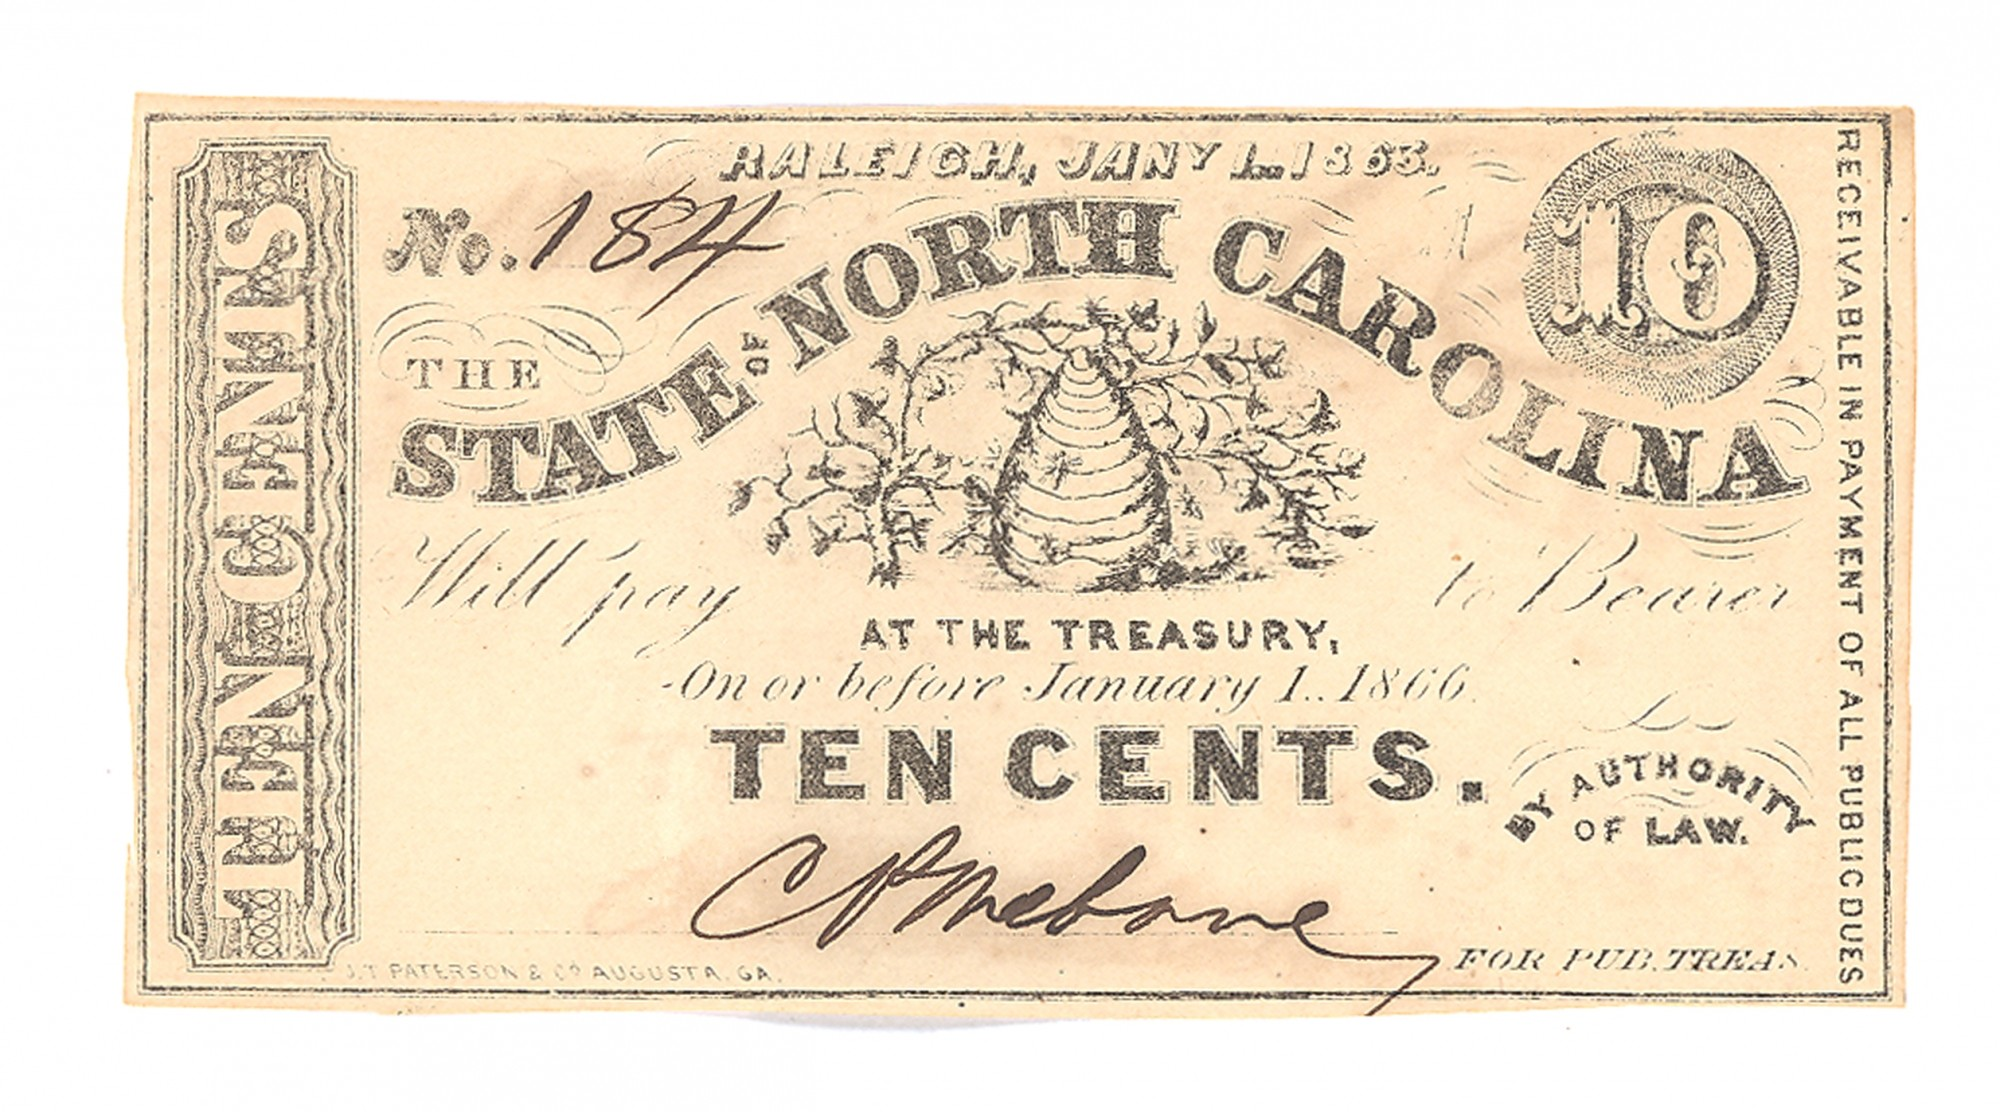 STATE OF NORTH CAROLINA, NORTH CAROLINA $.10 NOTE